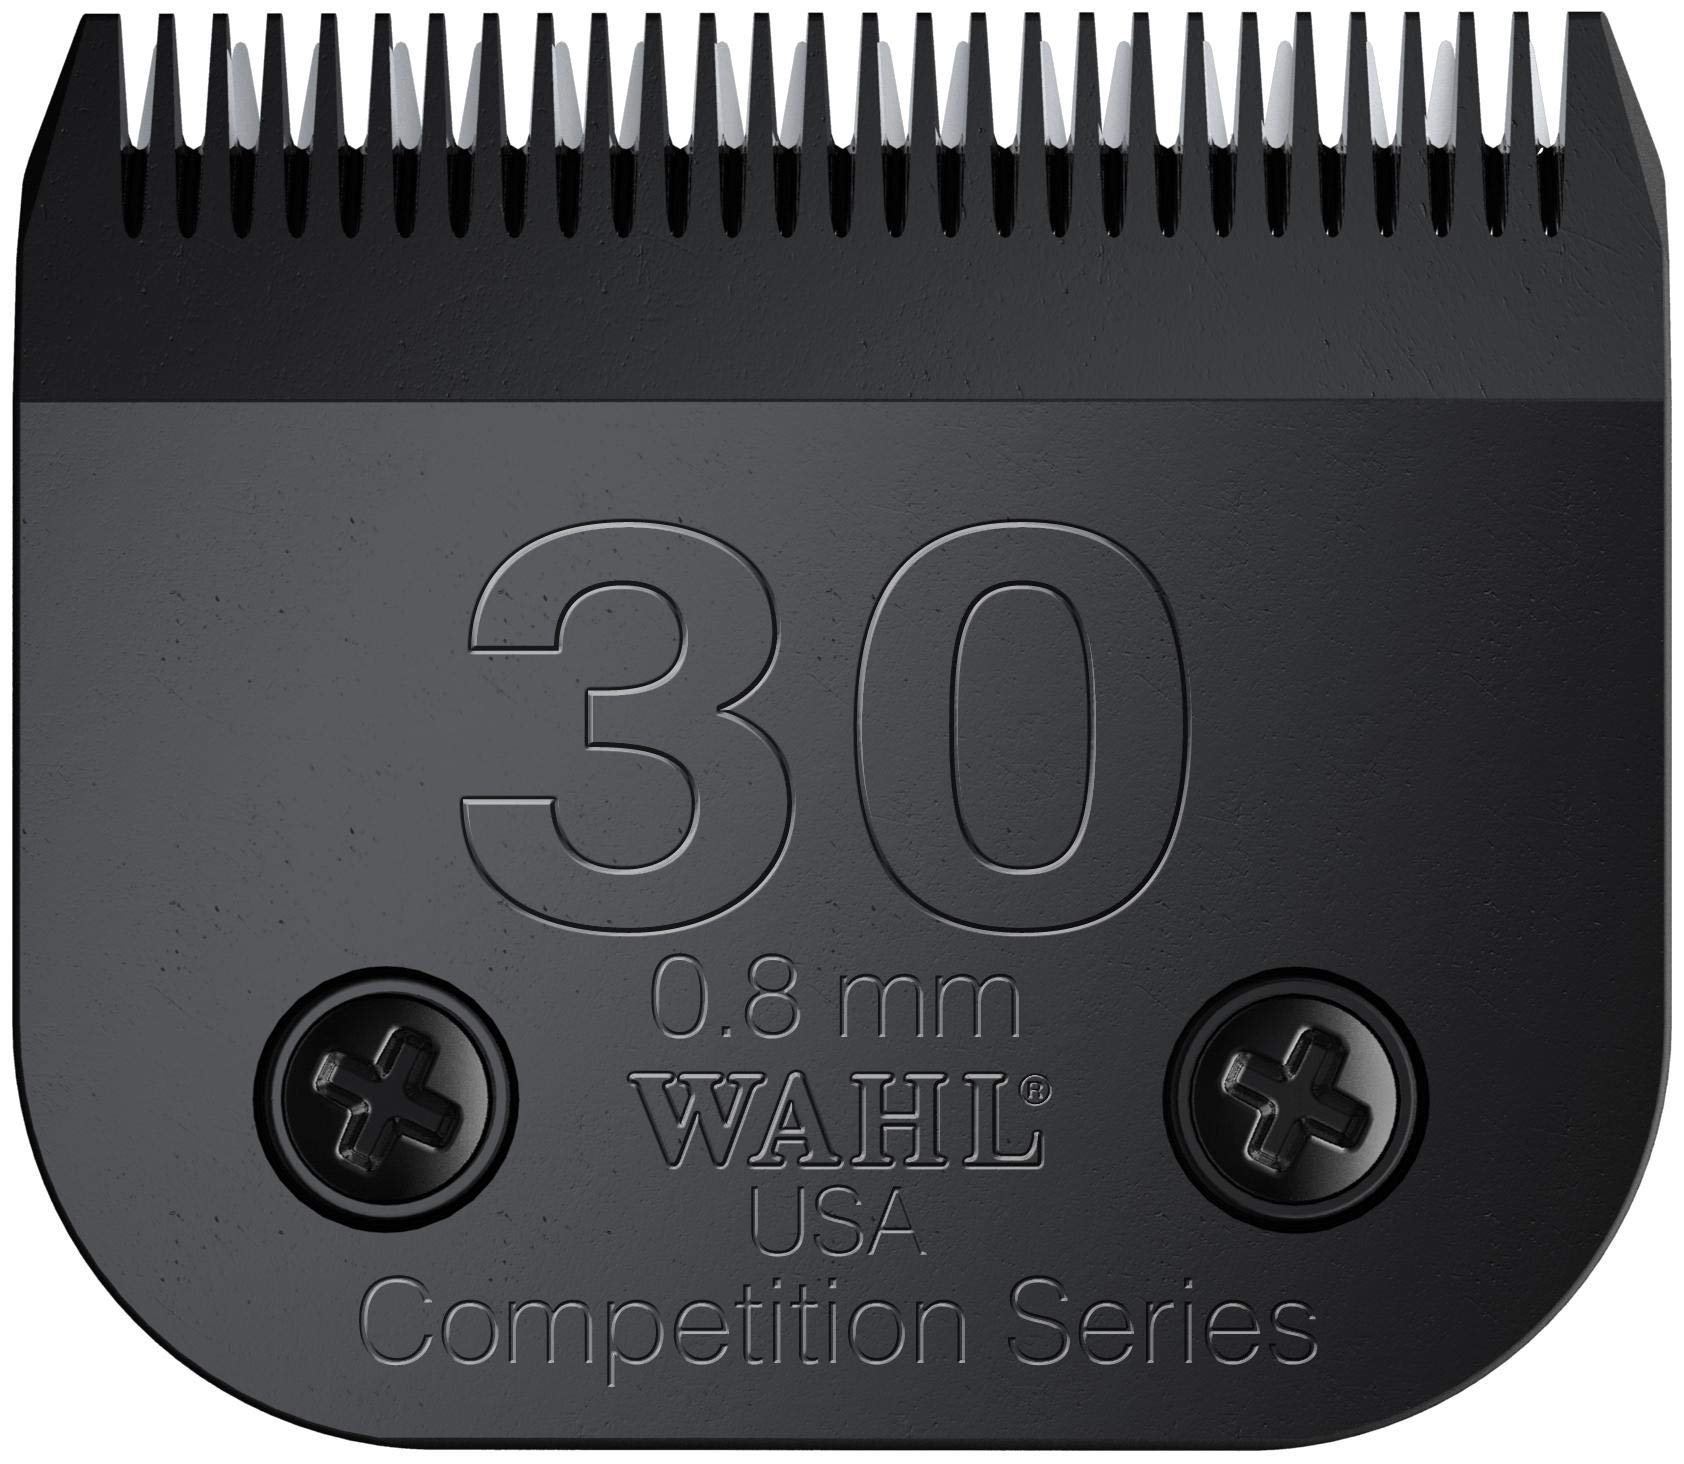 Wahl Professional Animal Ultimate Competition Series #30 Detachable Blade for Wahl's KM10, KM5, KM2, KM2 Deluxe, Power Grip, SS-Pro, and Stable Pro Plus (#2355-500)